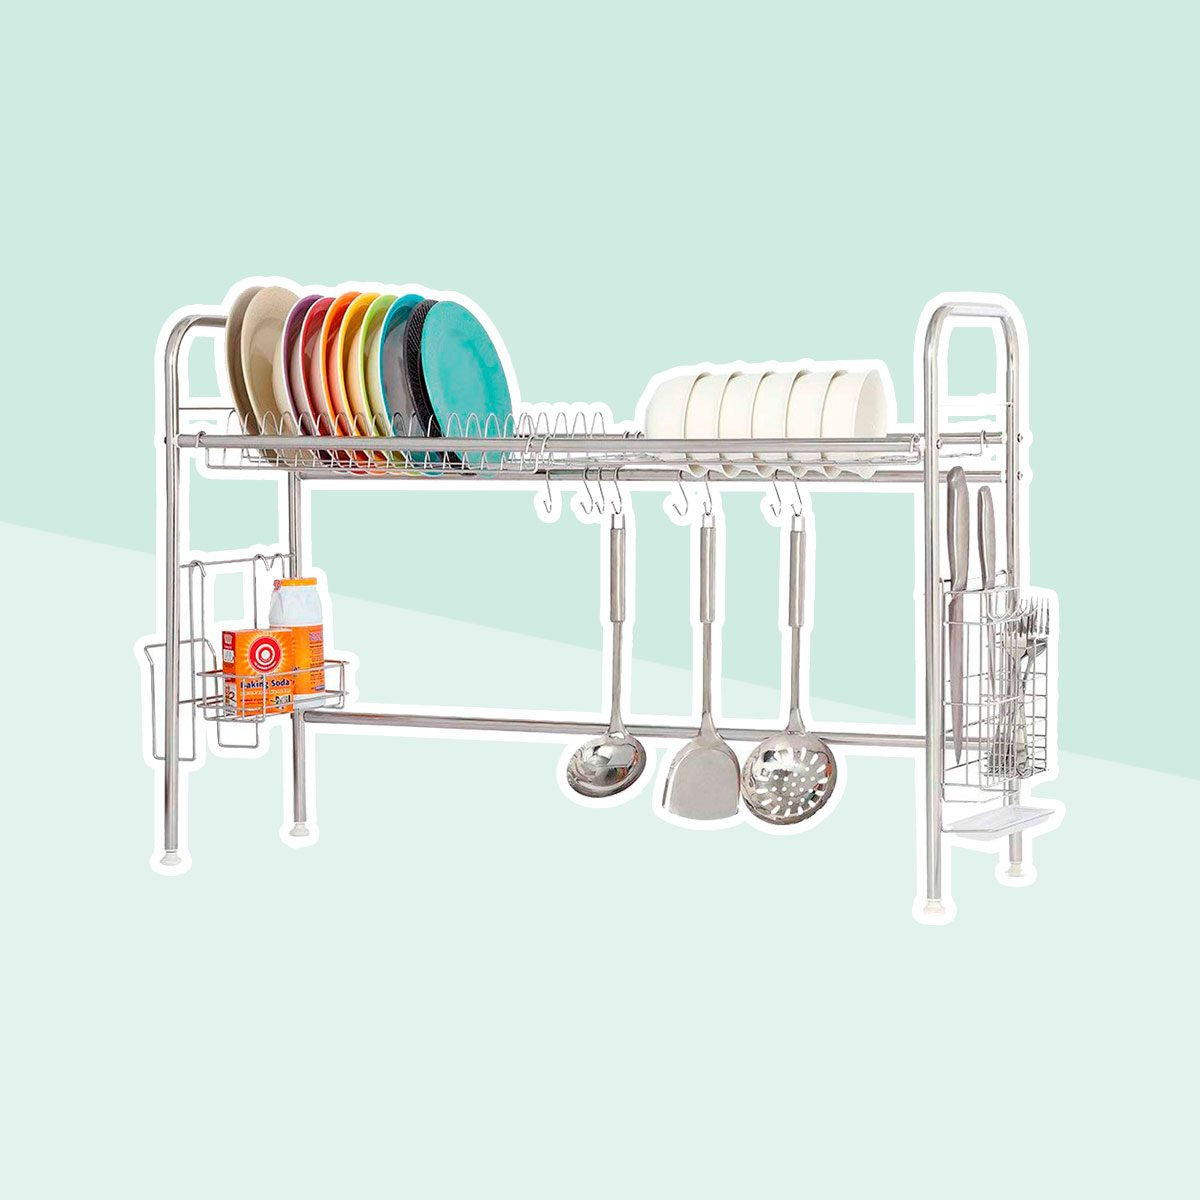 Stainless steel drying cart